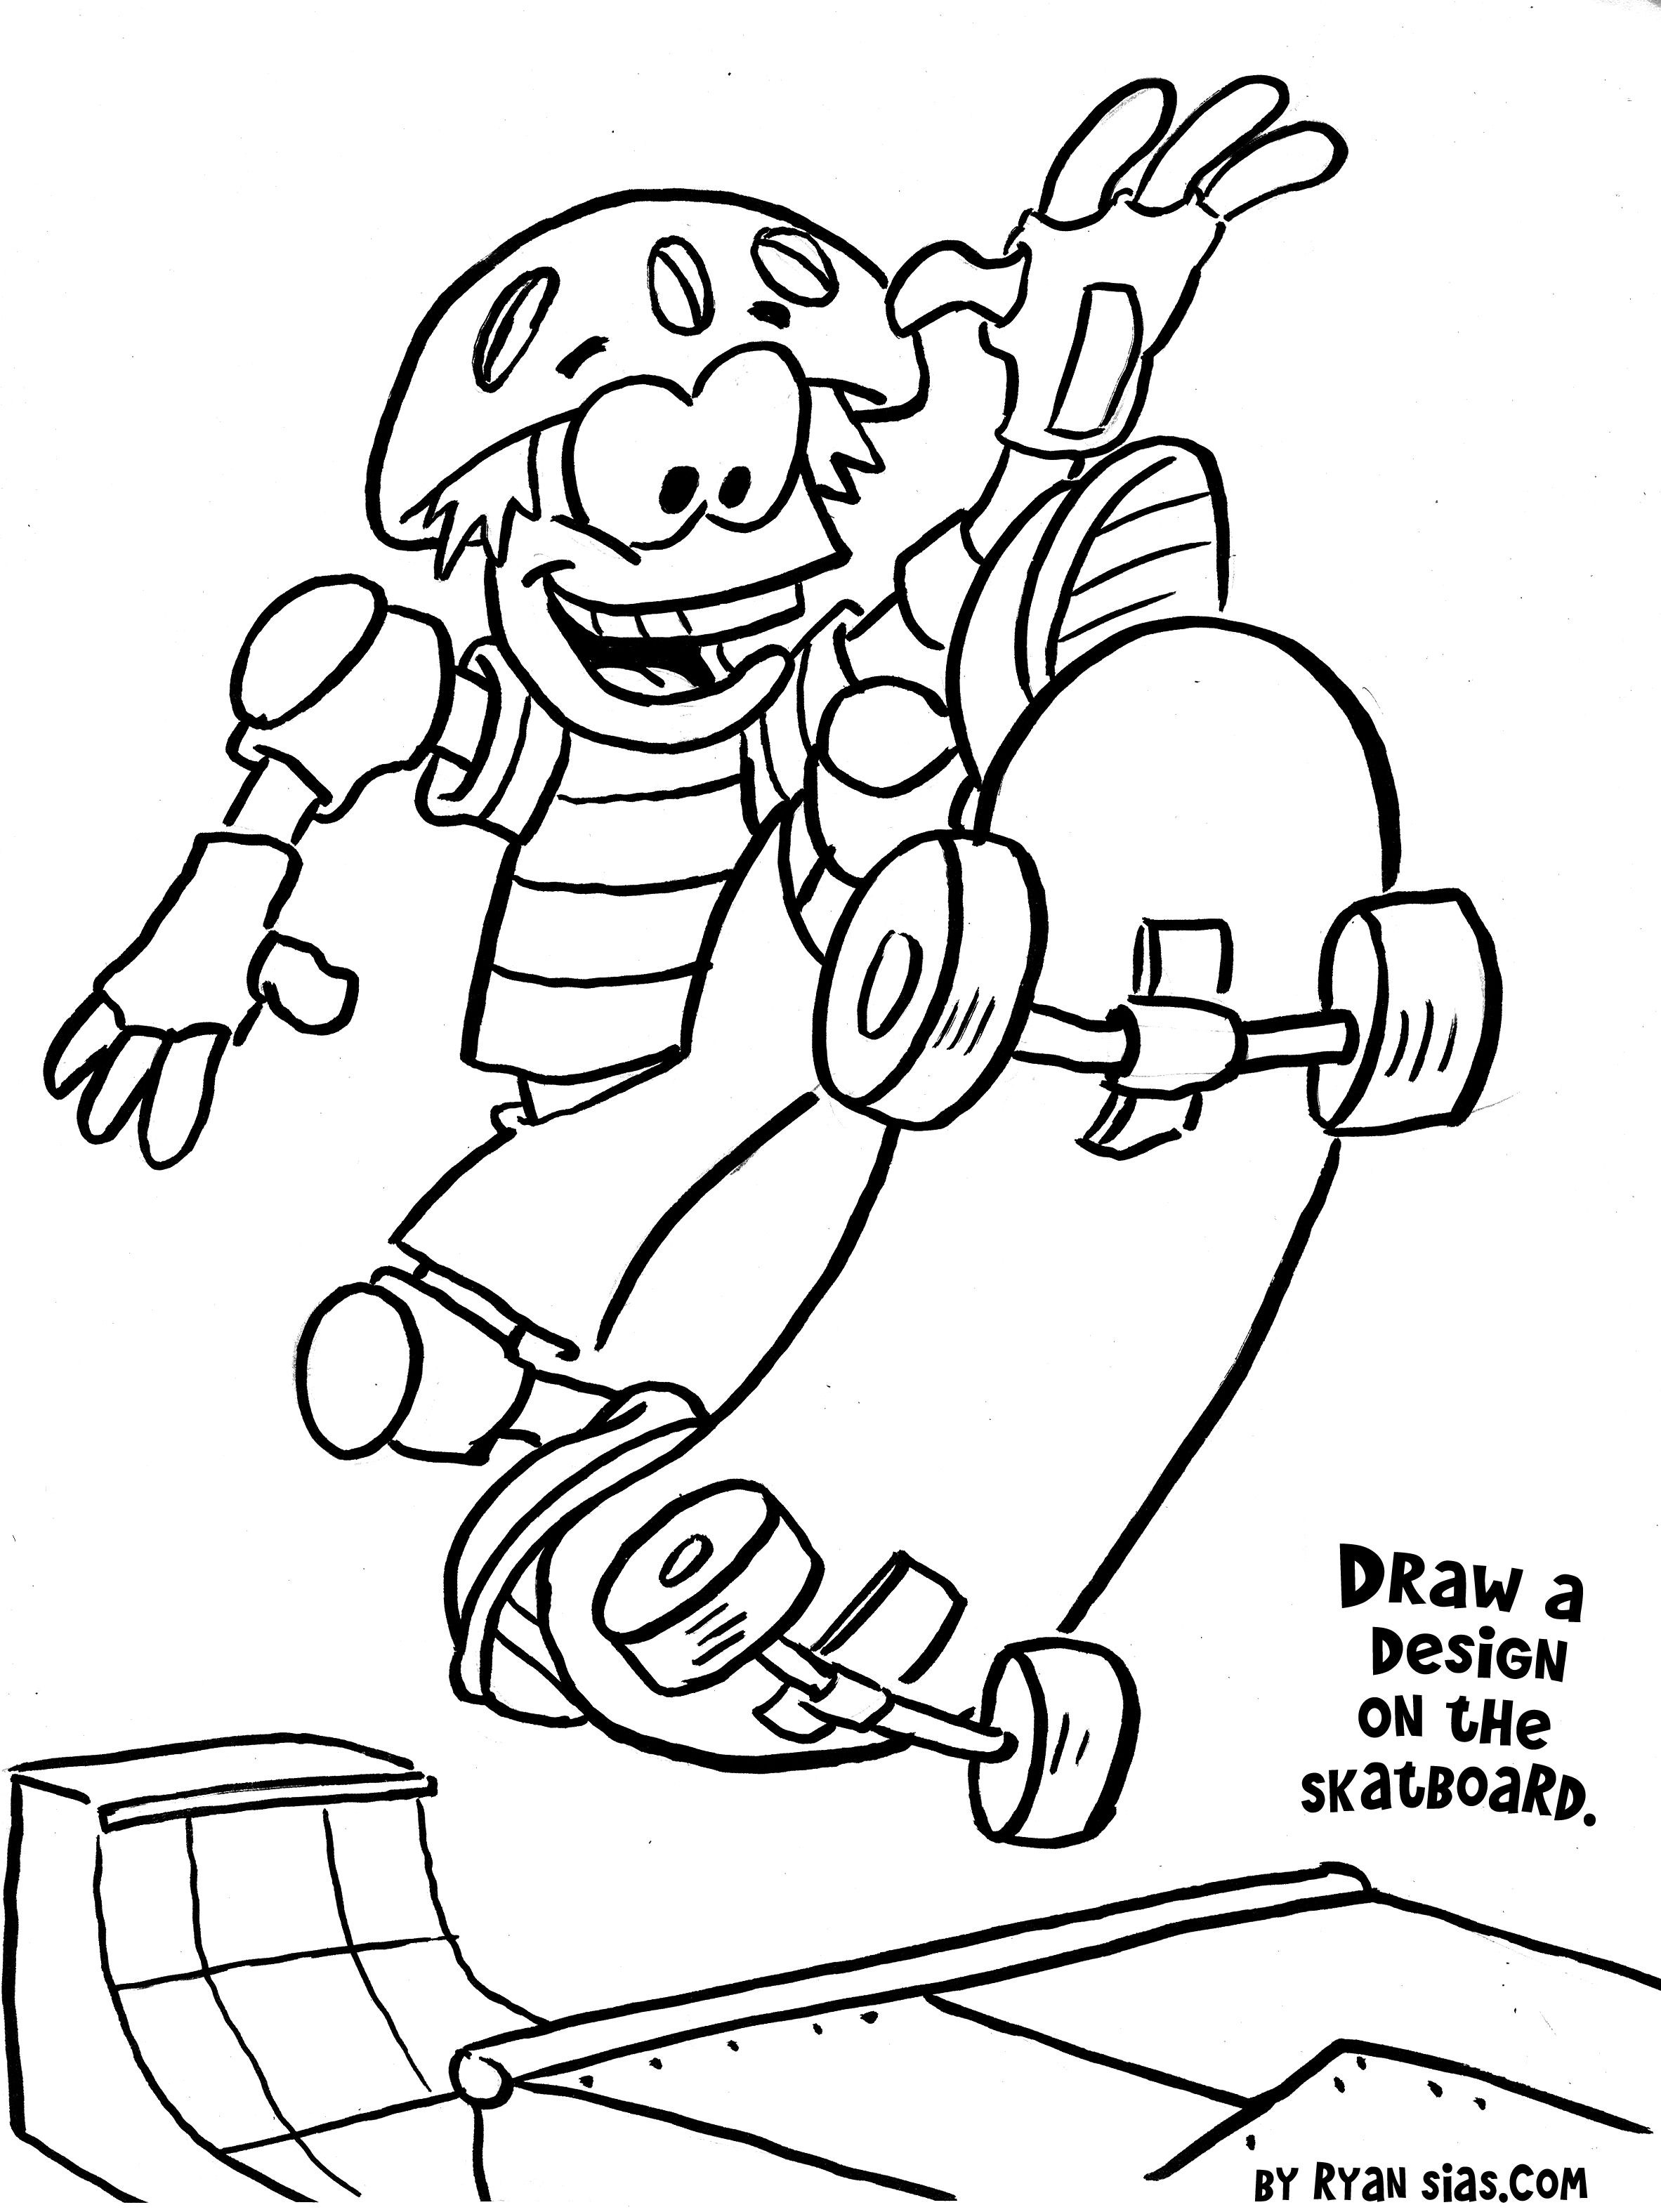 Printable coloring pages sports - Free Printable Sports Coloring Pages Skateboard Gianfreda Net